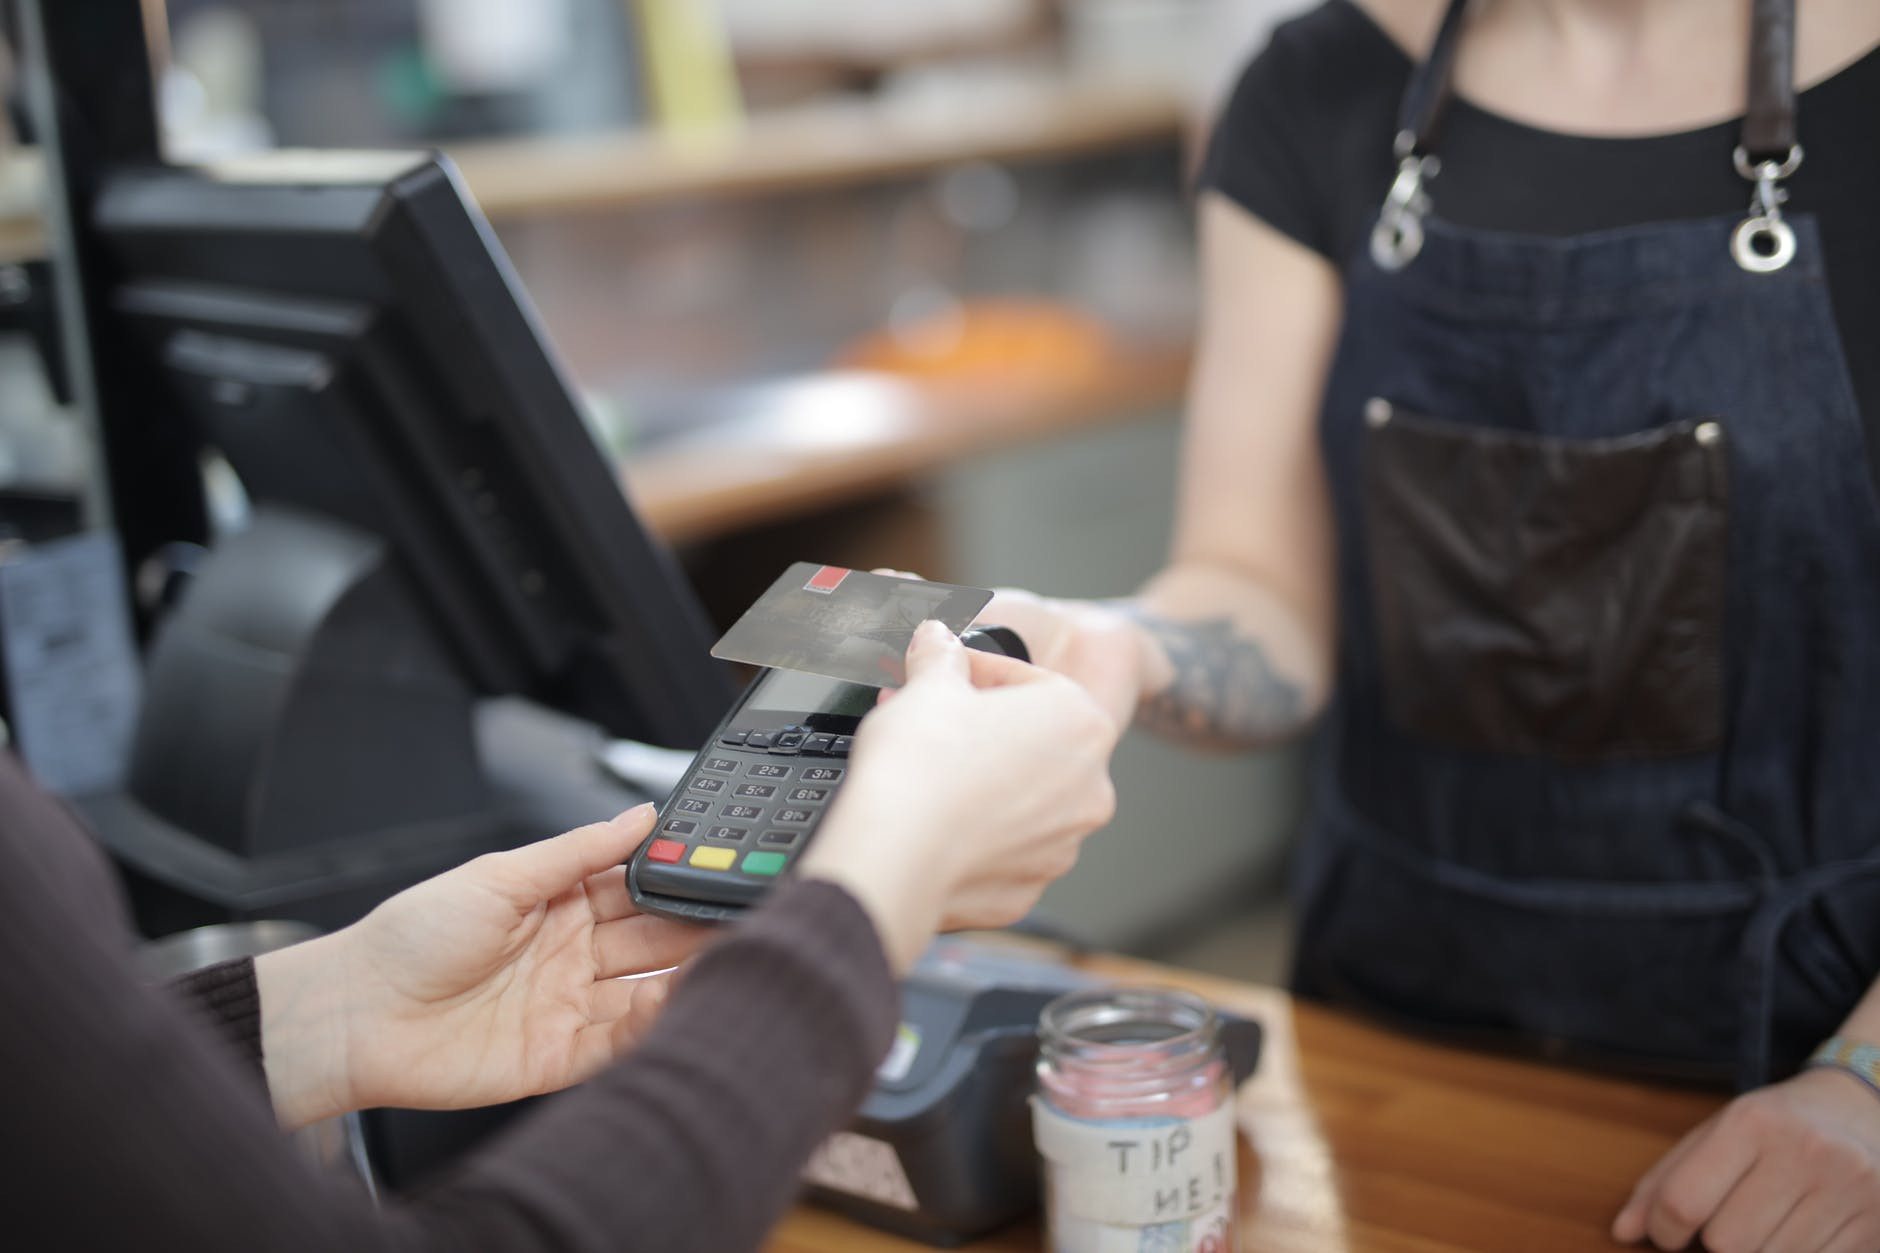 Credit Card Terms to Know to Avoid Credit Card Charges - Payment processing fee